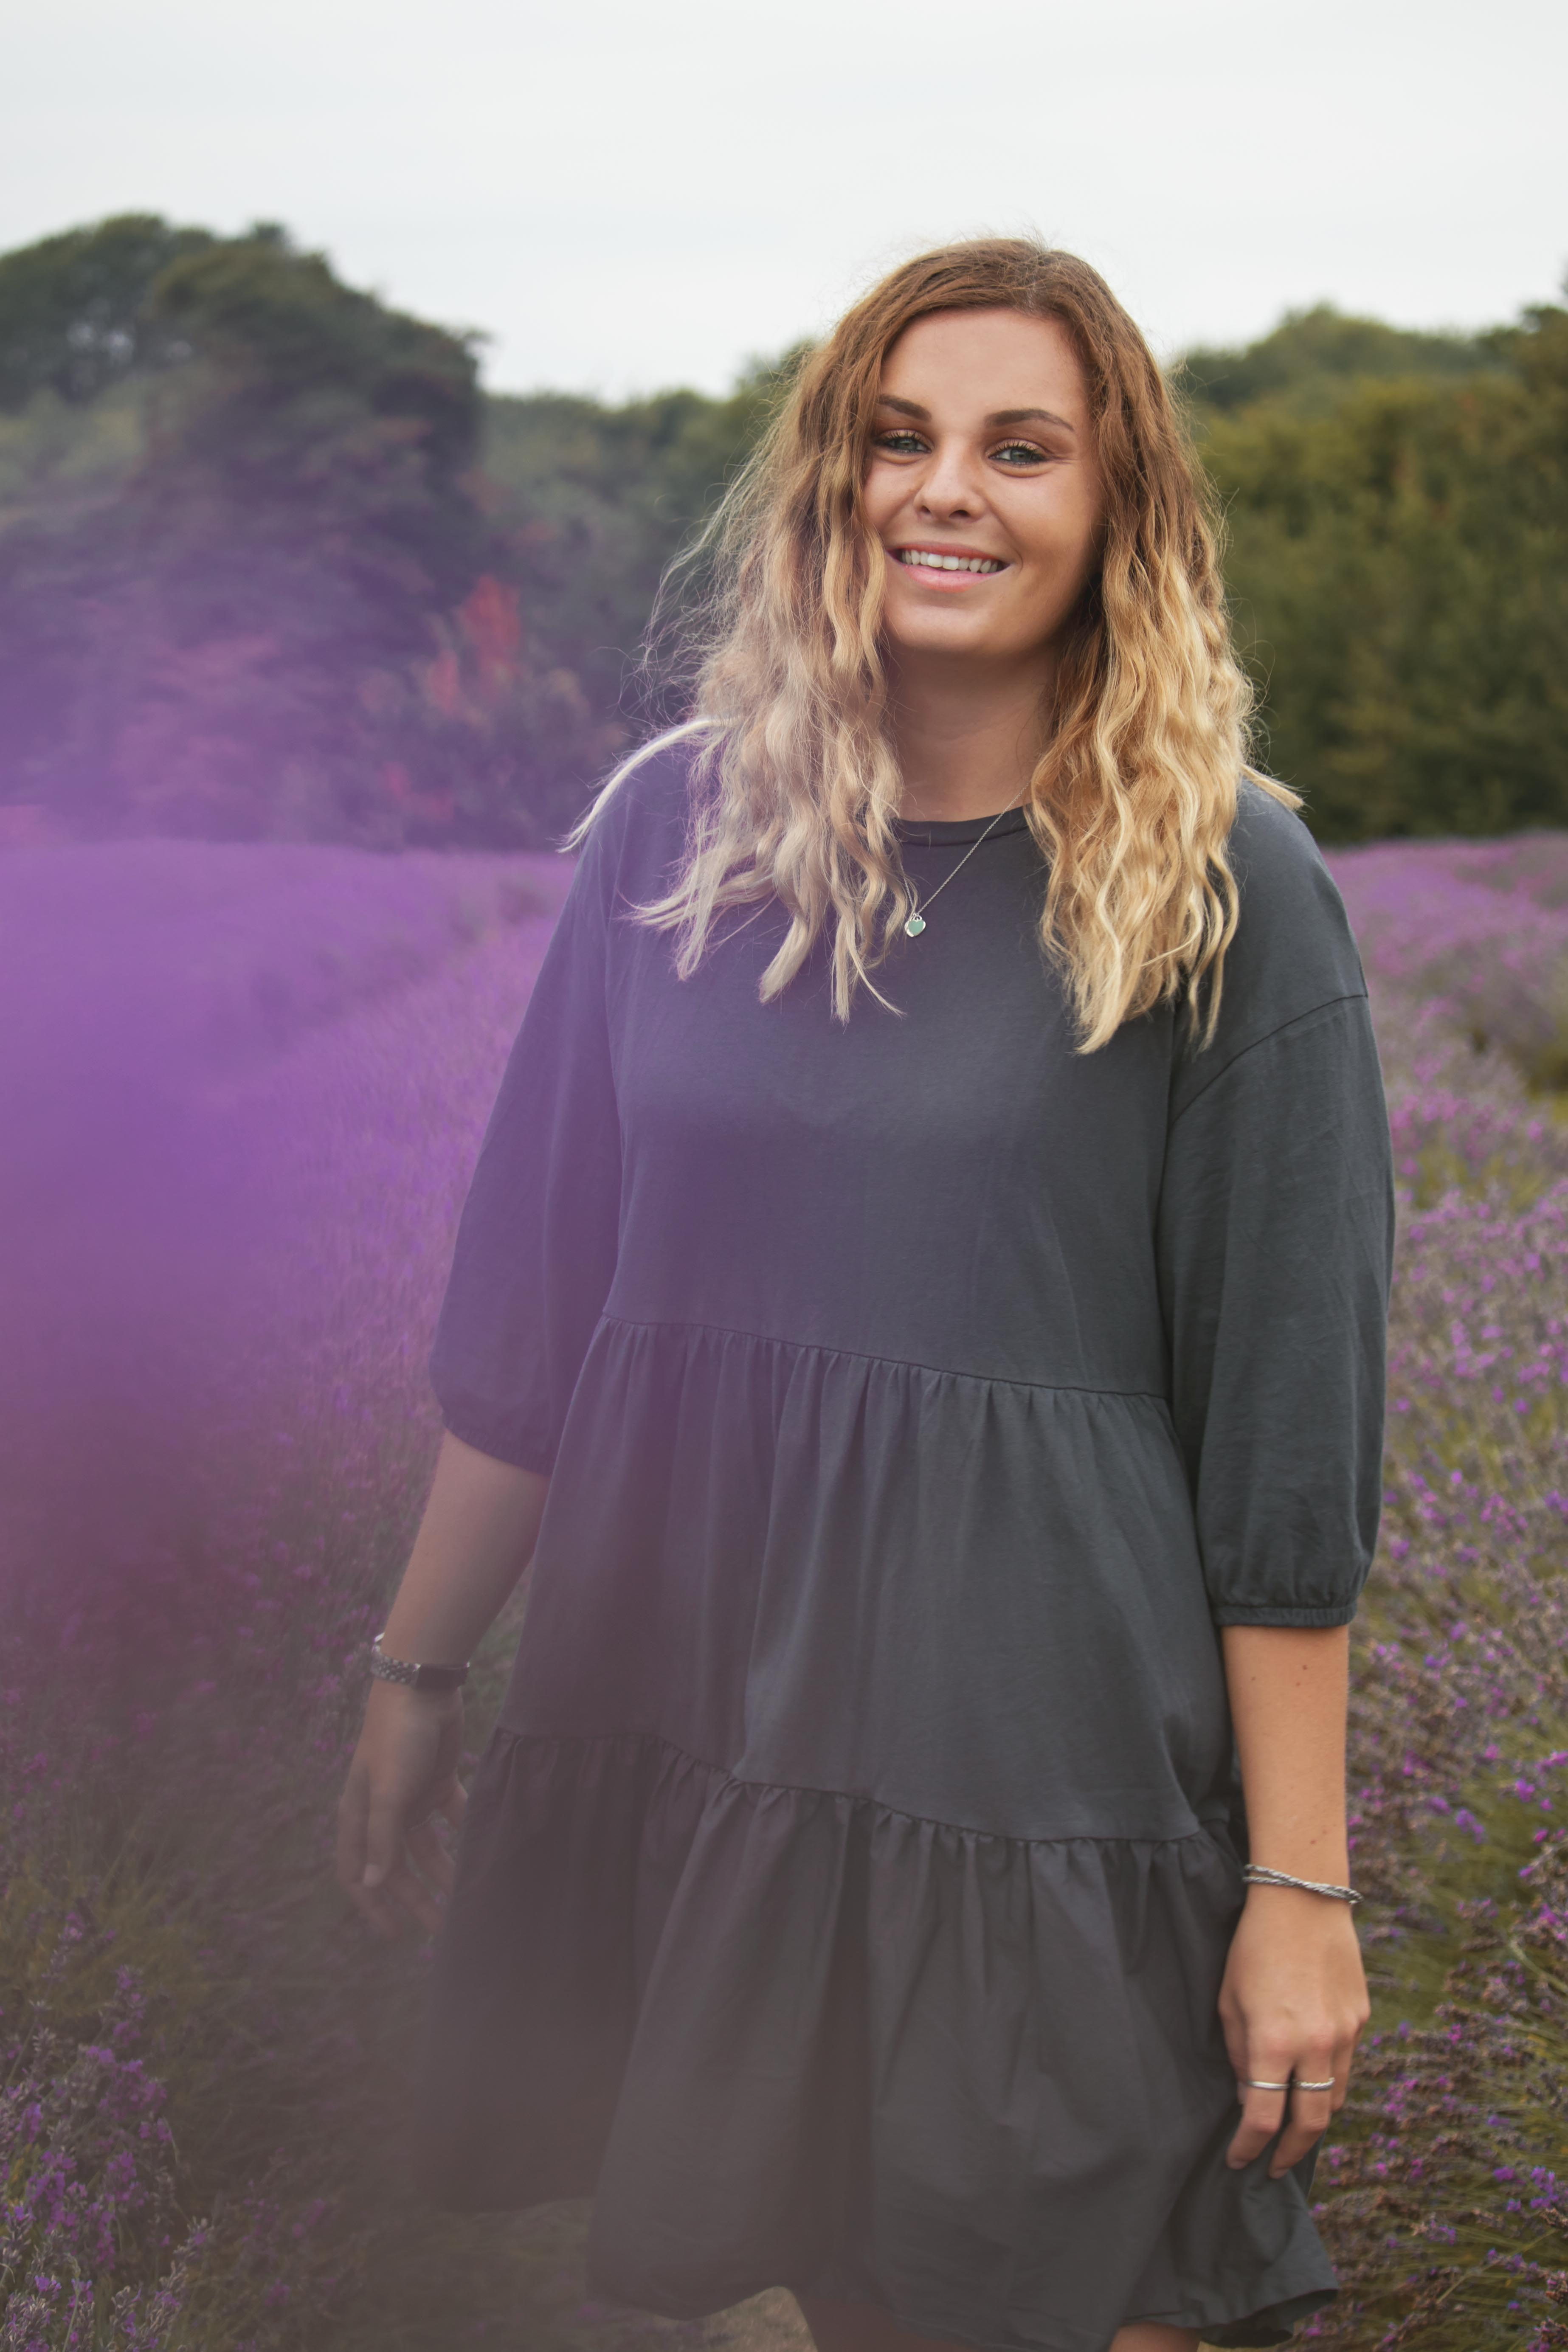 Relaxed Branding Photography at the Lavender